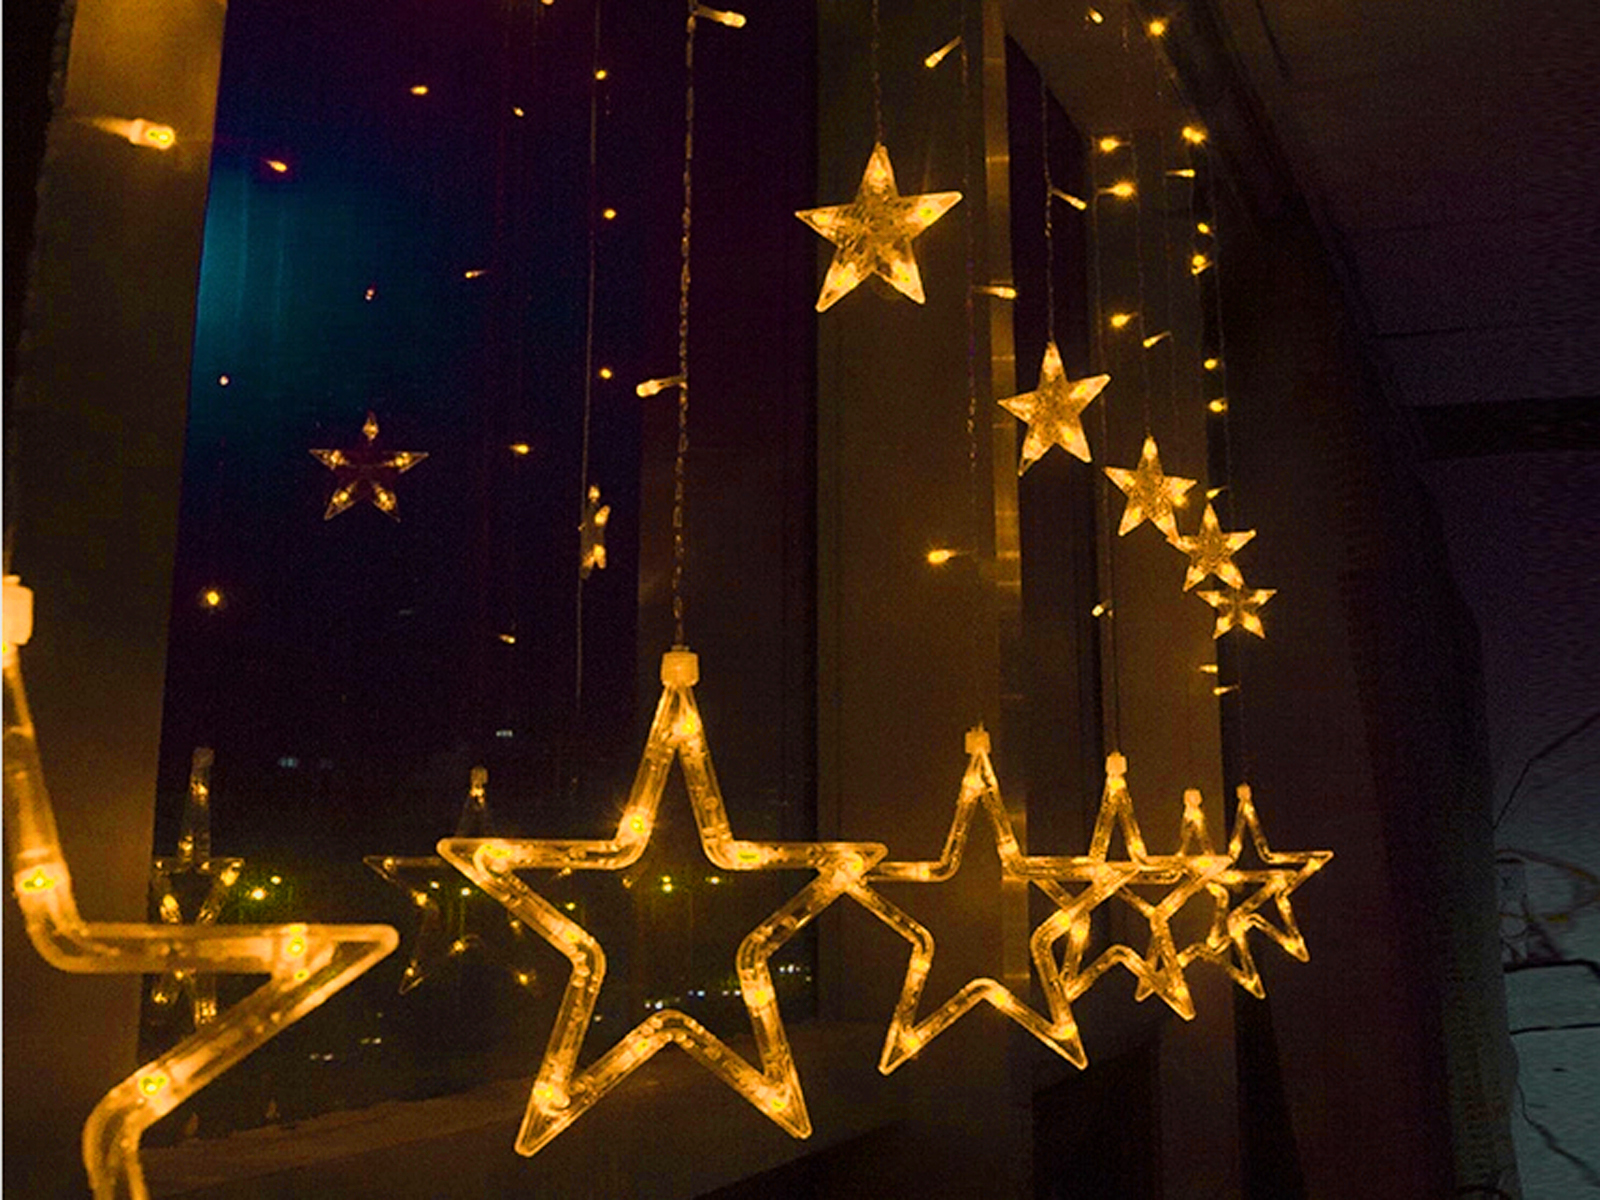 Details about LED Stars Fairy String Lights Indoor Room Xmas Christmas Party Decor Waterproof